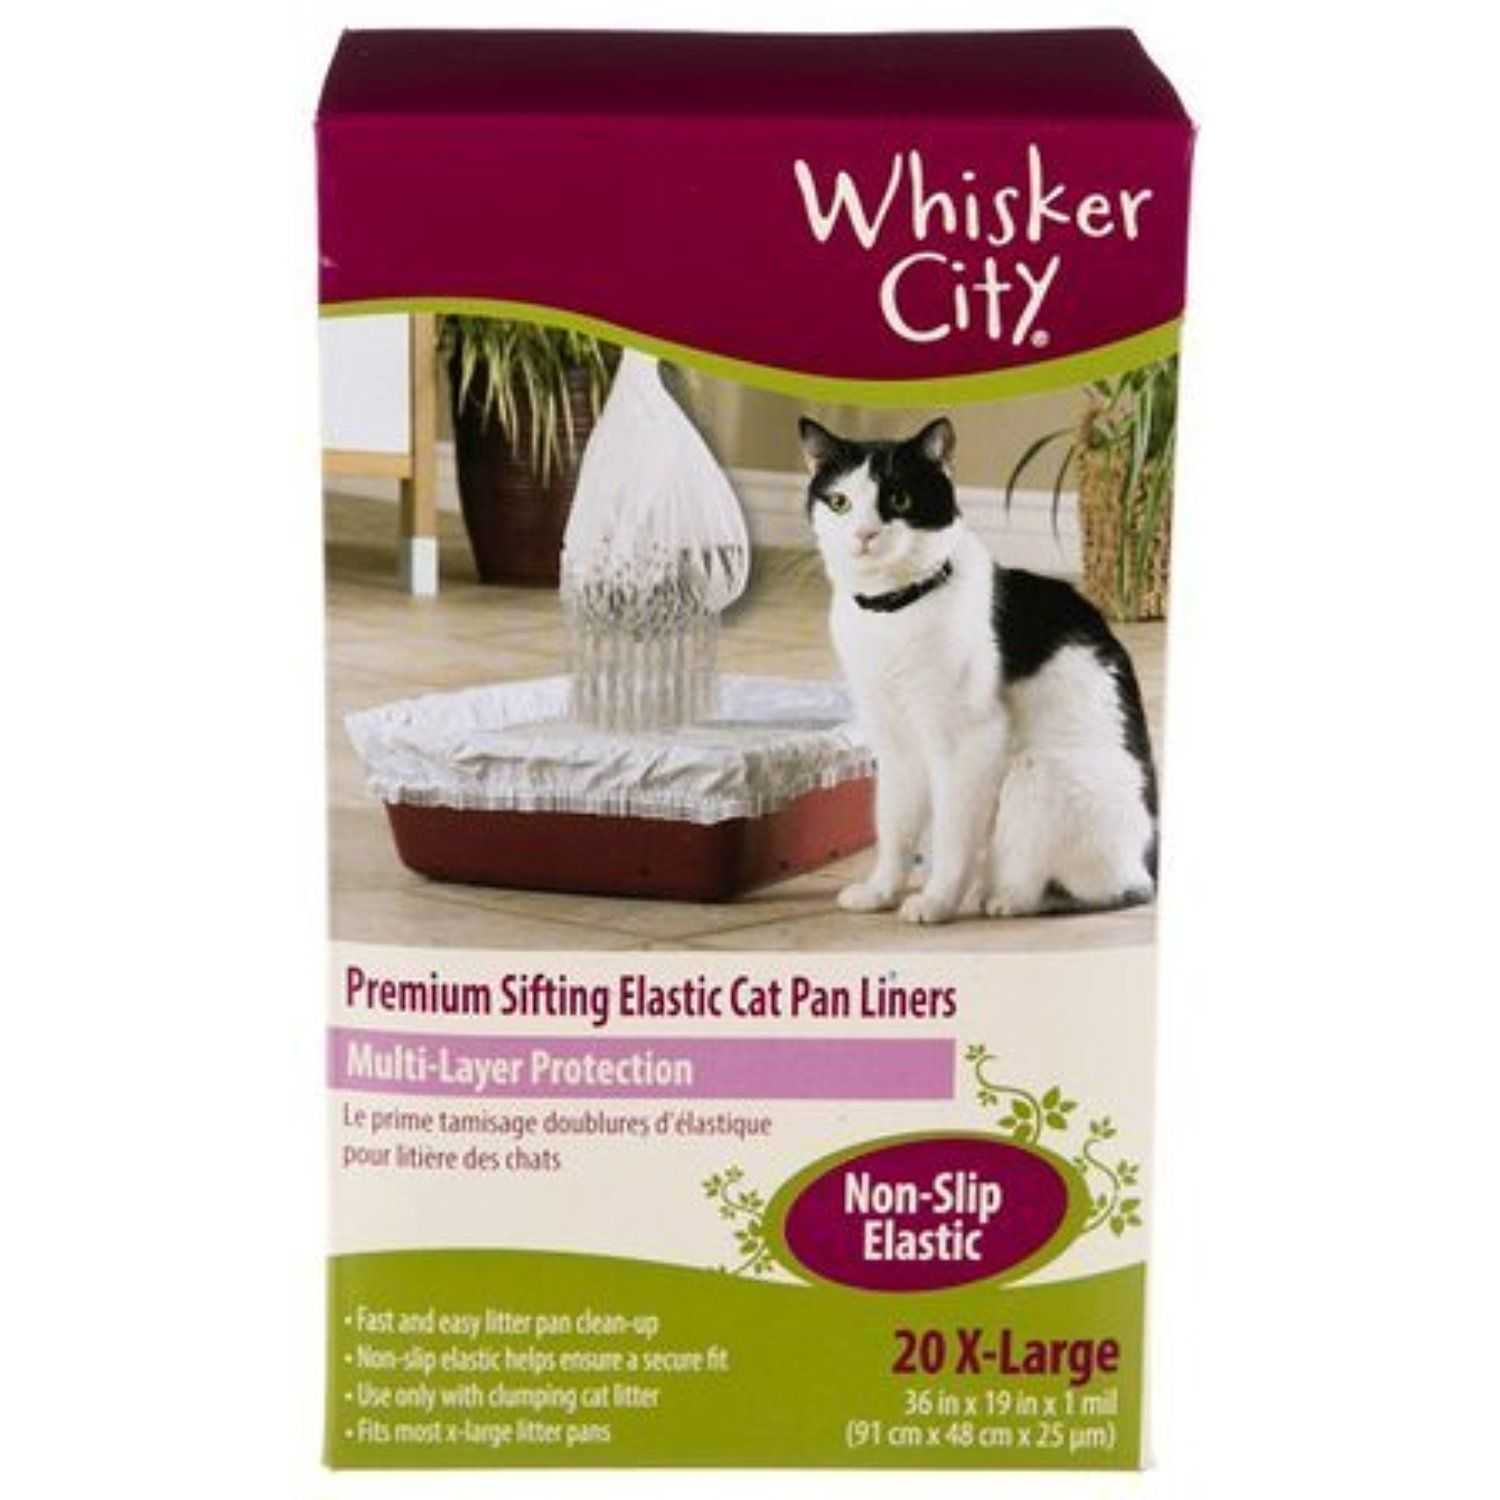 Whisker City Extra Large Cat Sifting Litter Box Liners, 20